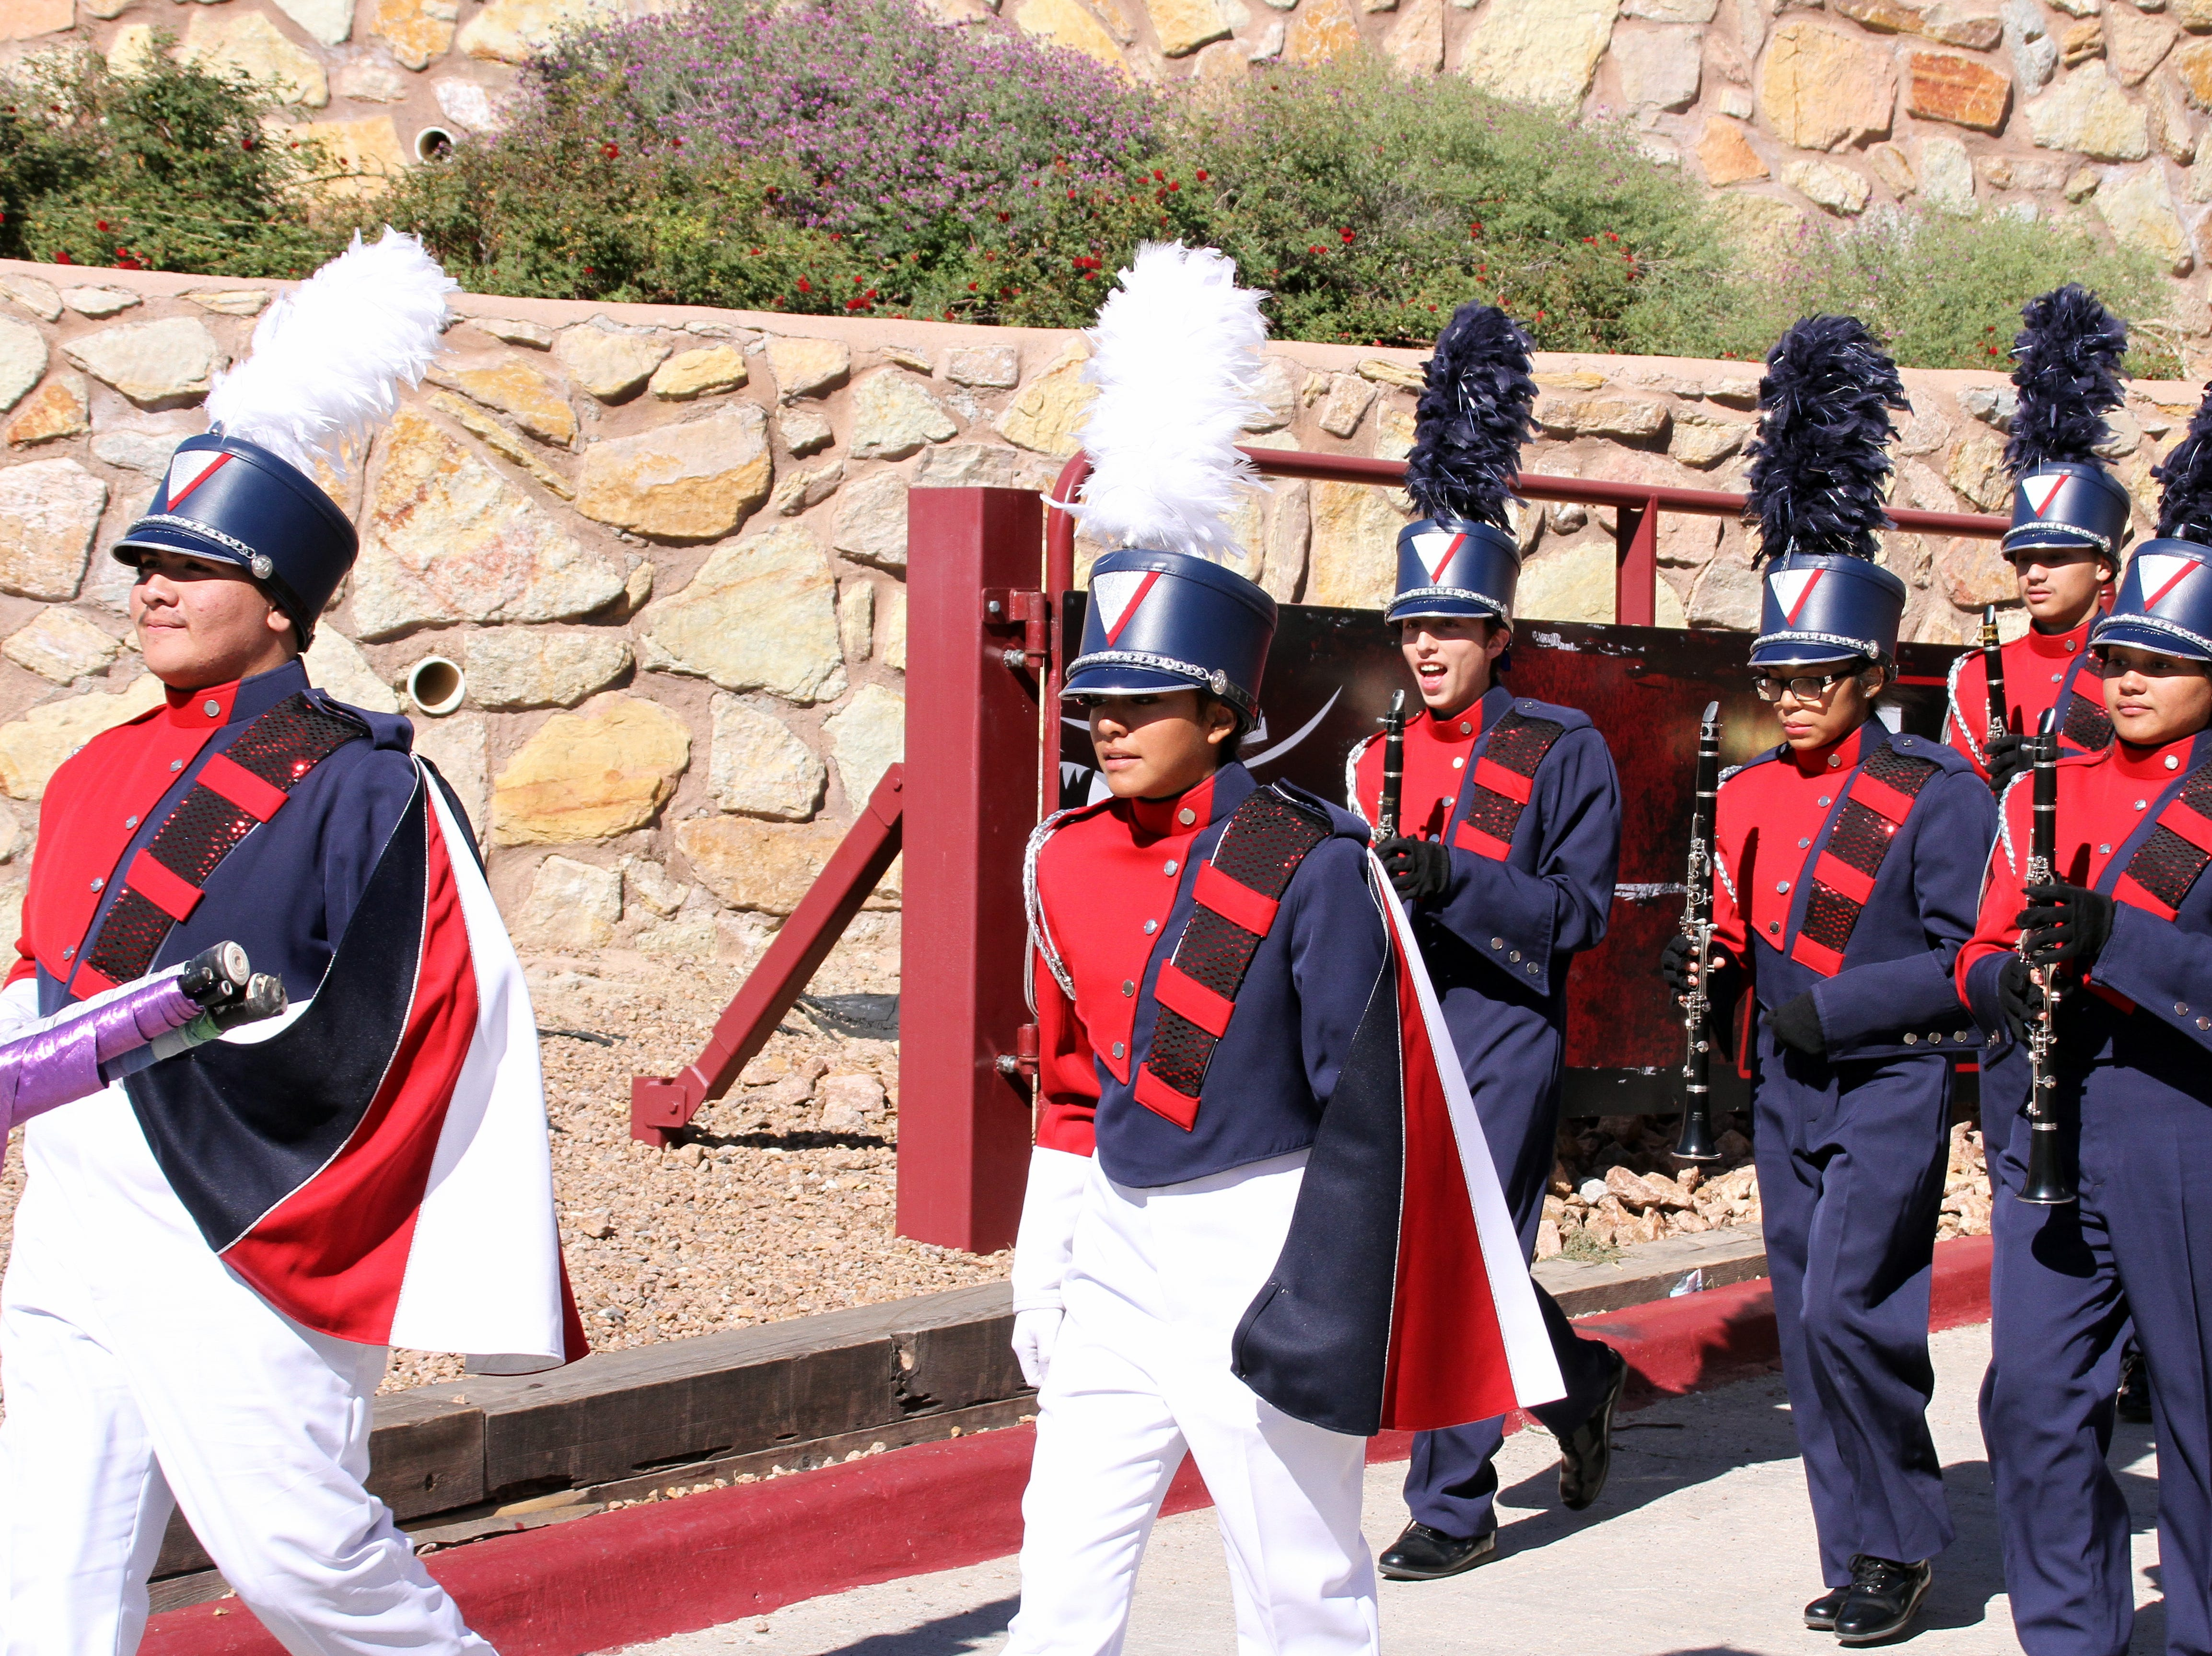 Drum Majors lead the Wildcat Marching Band onto the field at Aggie Memorial Stadium.